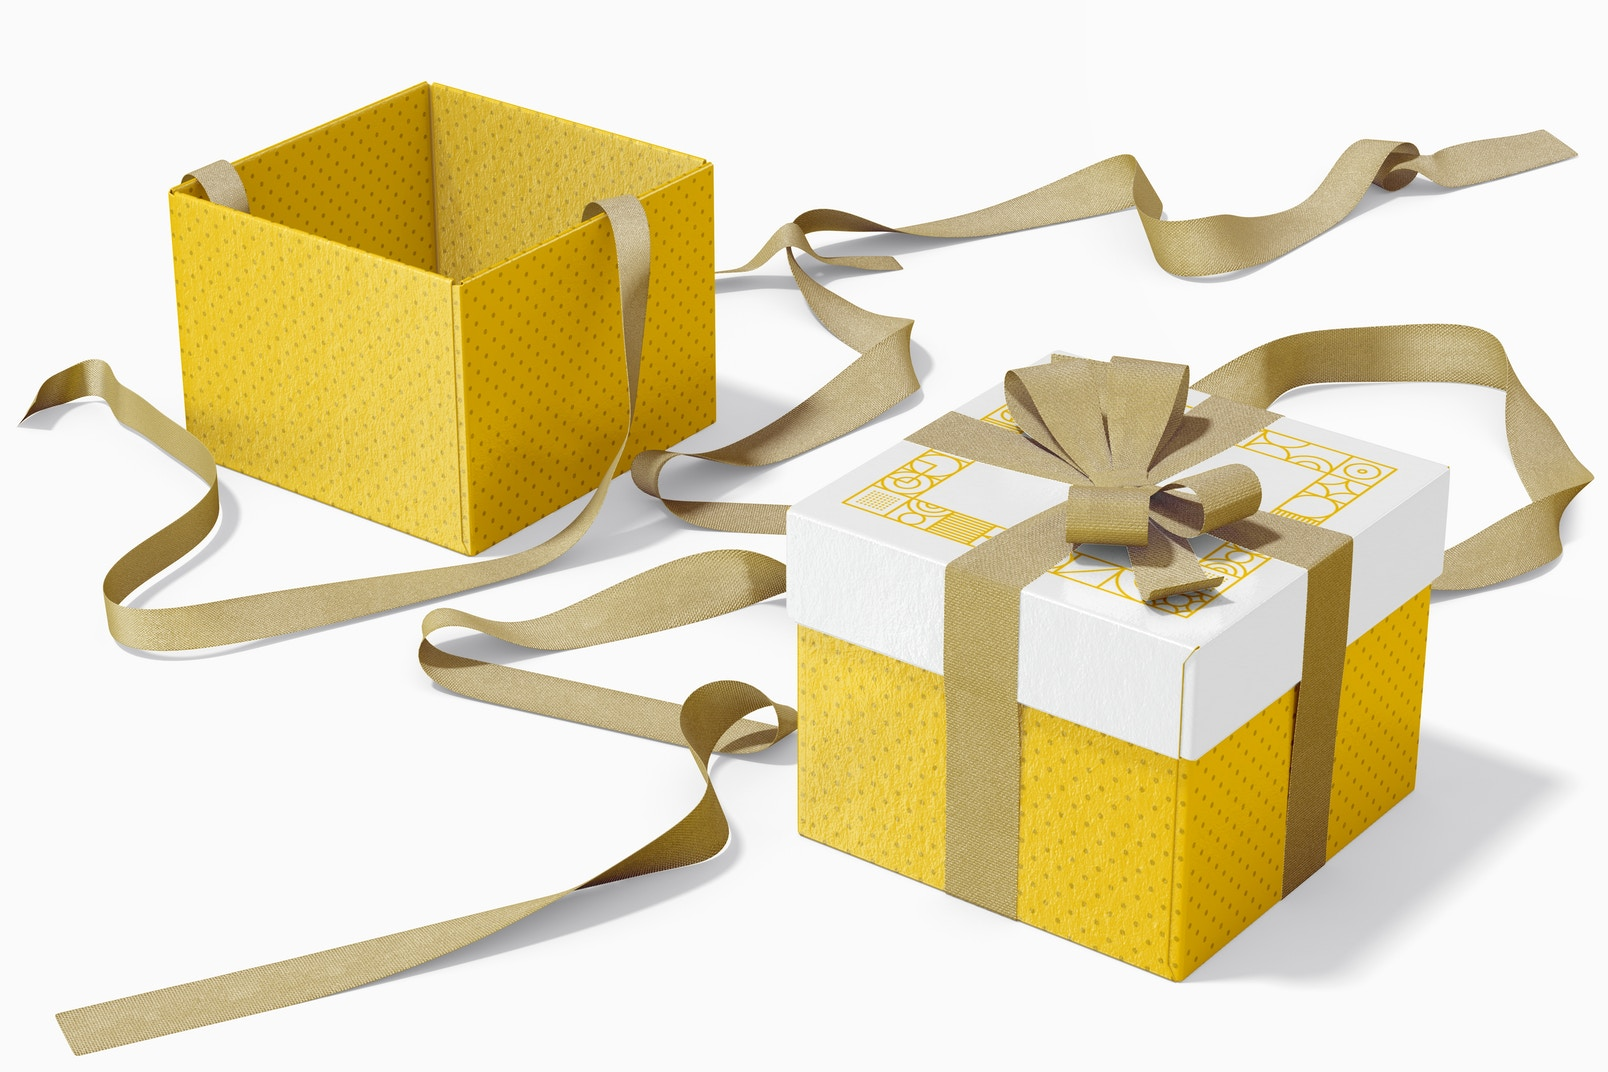 Cube Gift Boxes With Ribbon Mockup, Opened and Closed